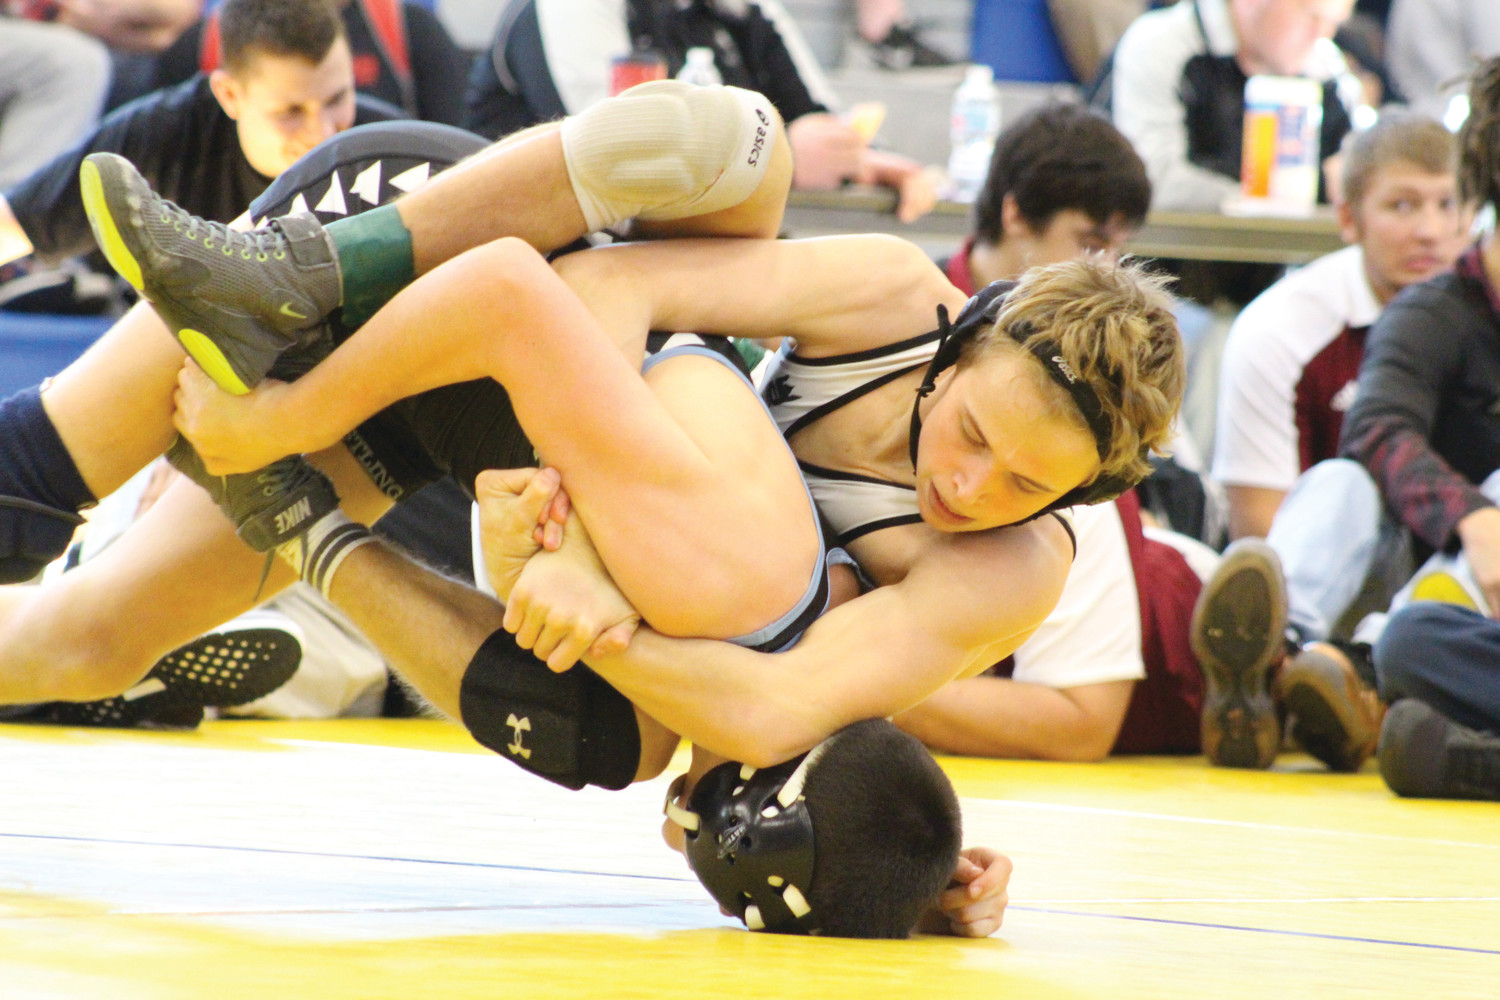 Fleming Island High 122 pounder wrestler Albie Snedaker, on top, drives head of South Dade's Bretli Reyna into mat in their Knockout Christmas Tournament semifinal match on Saturday. Snedaker lost match but finished fourth in weight class.